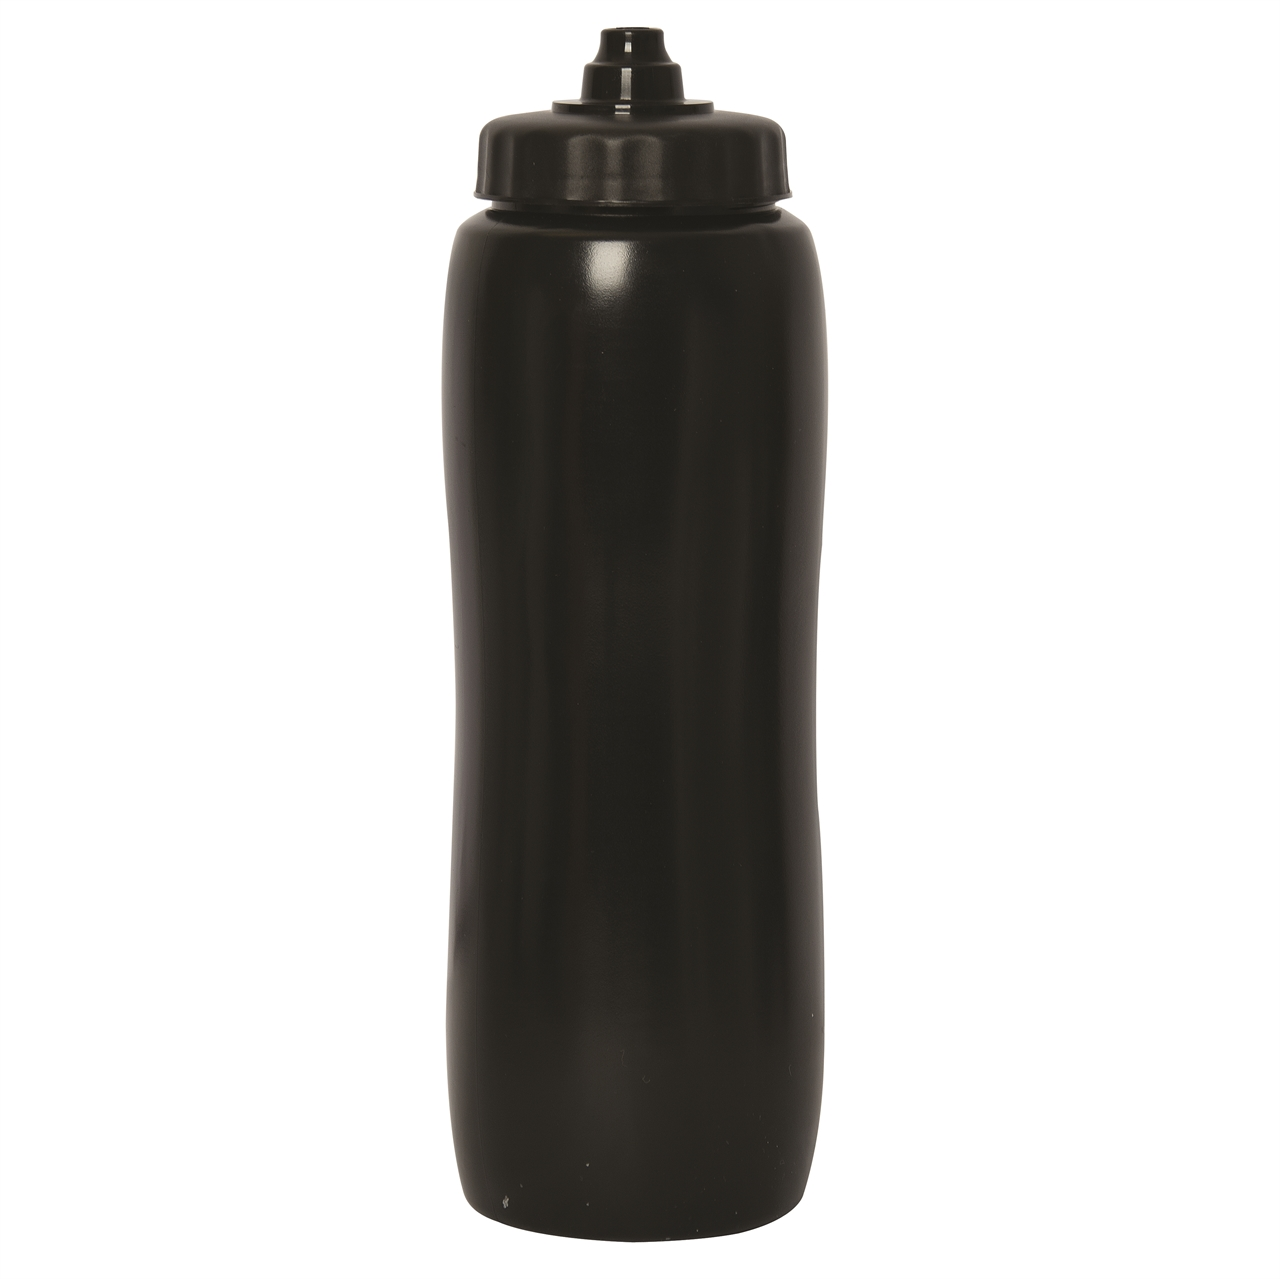 Picture of Valais 1000 Ml. (33 Oz.) Squeeze Bottle